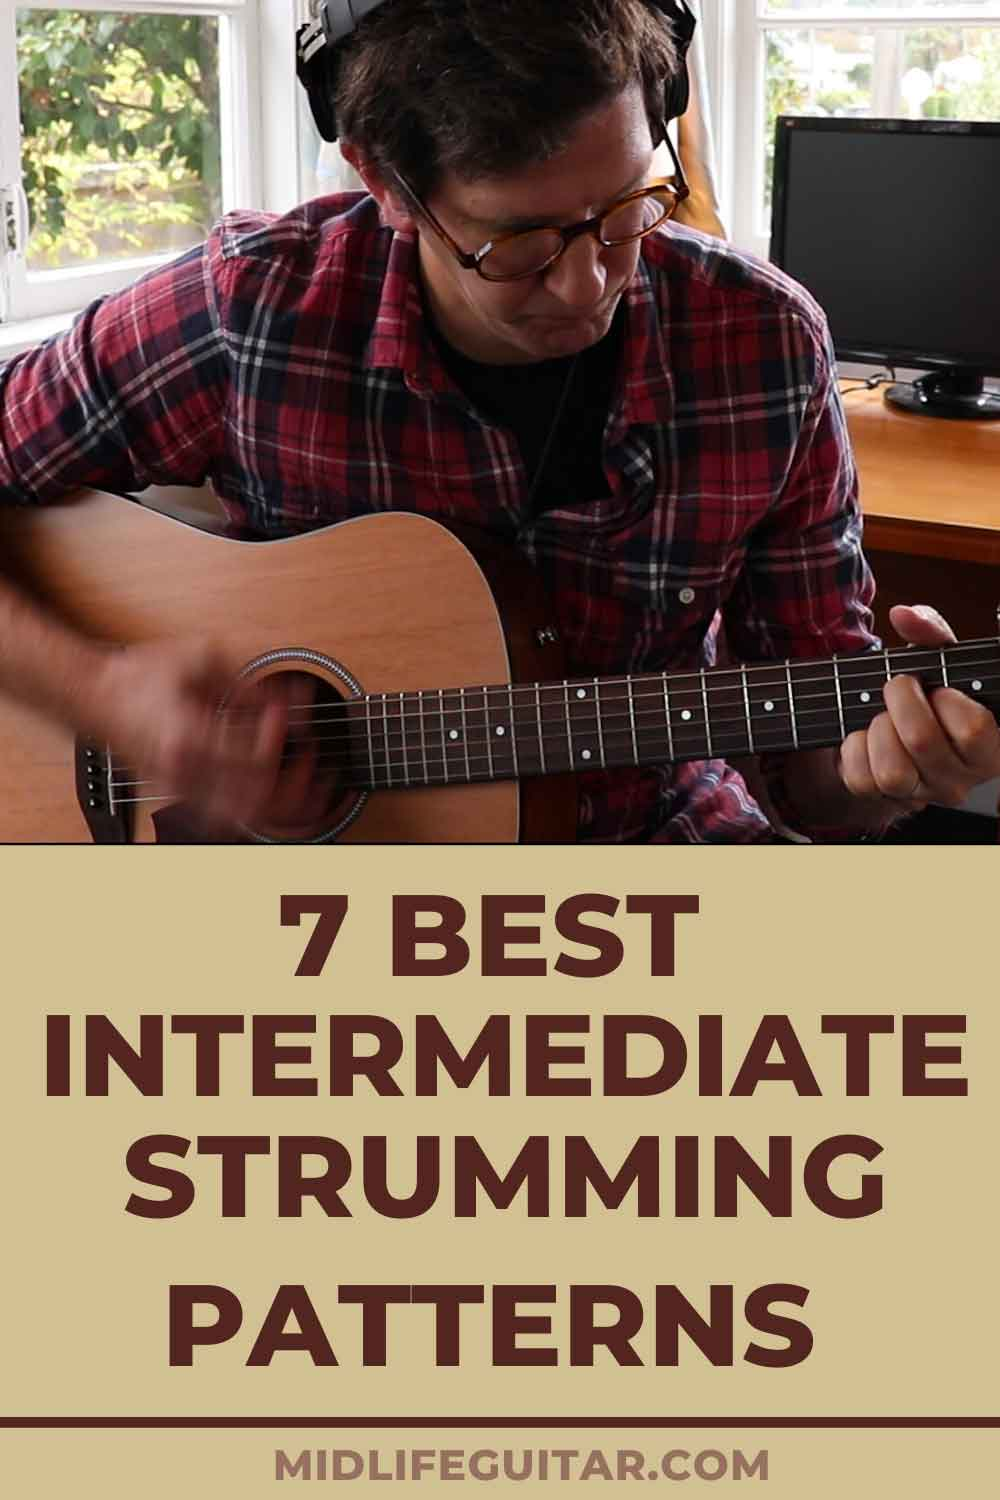 Best Intermediate Strumming Patterns